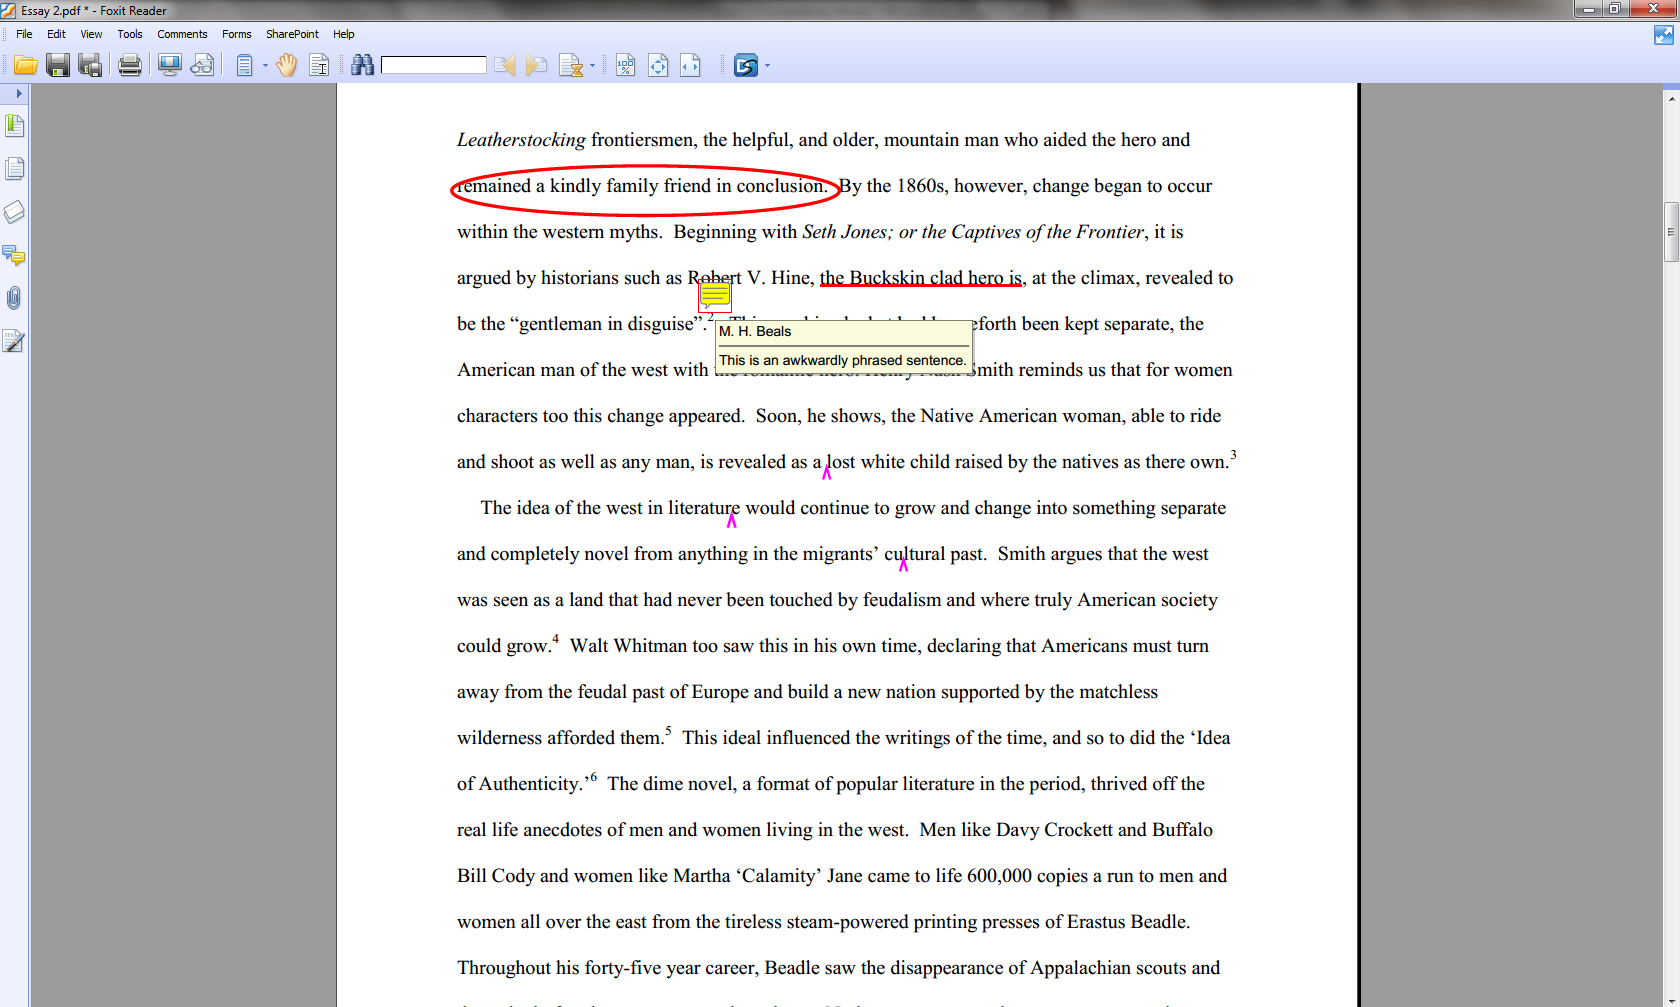 002 Essay Example How To Annotate An Wondrous A Movie In Critical Full